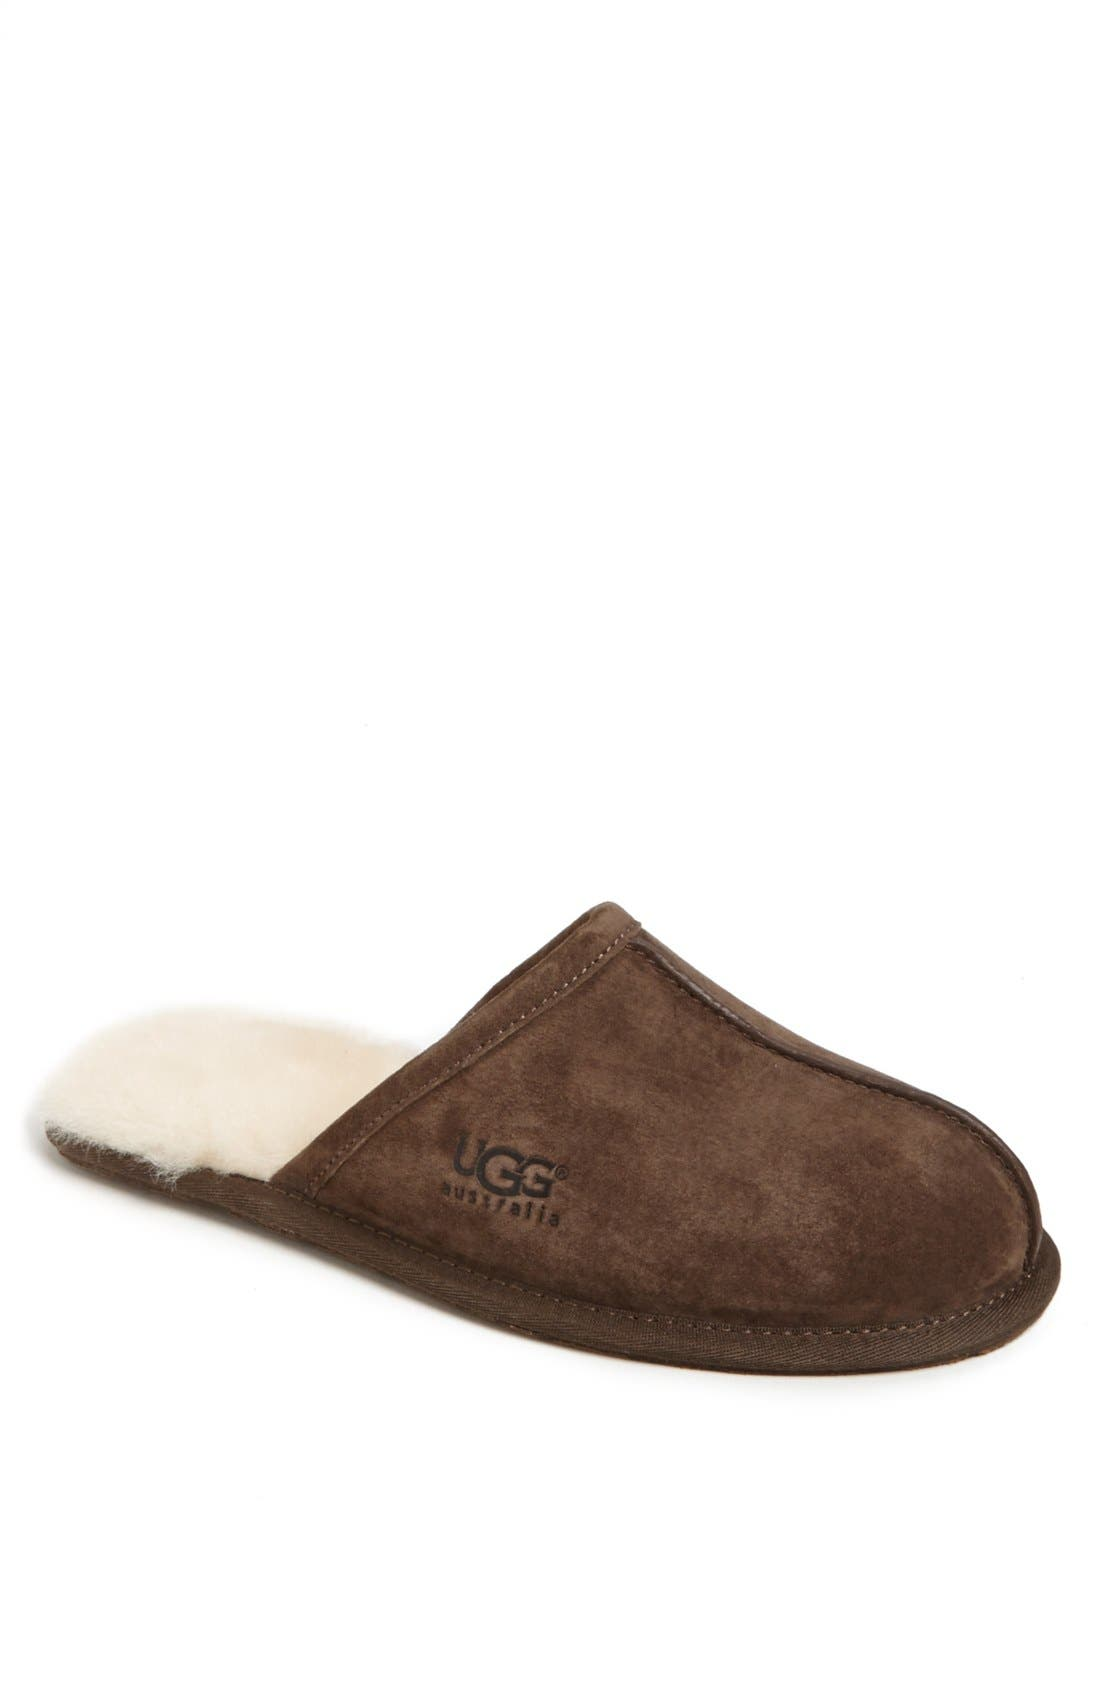 ugg mens slippers